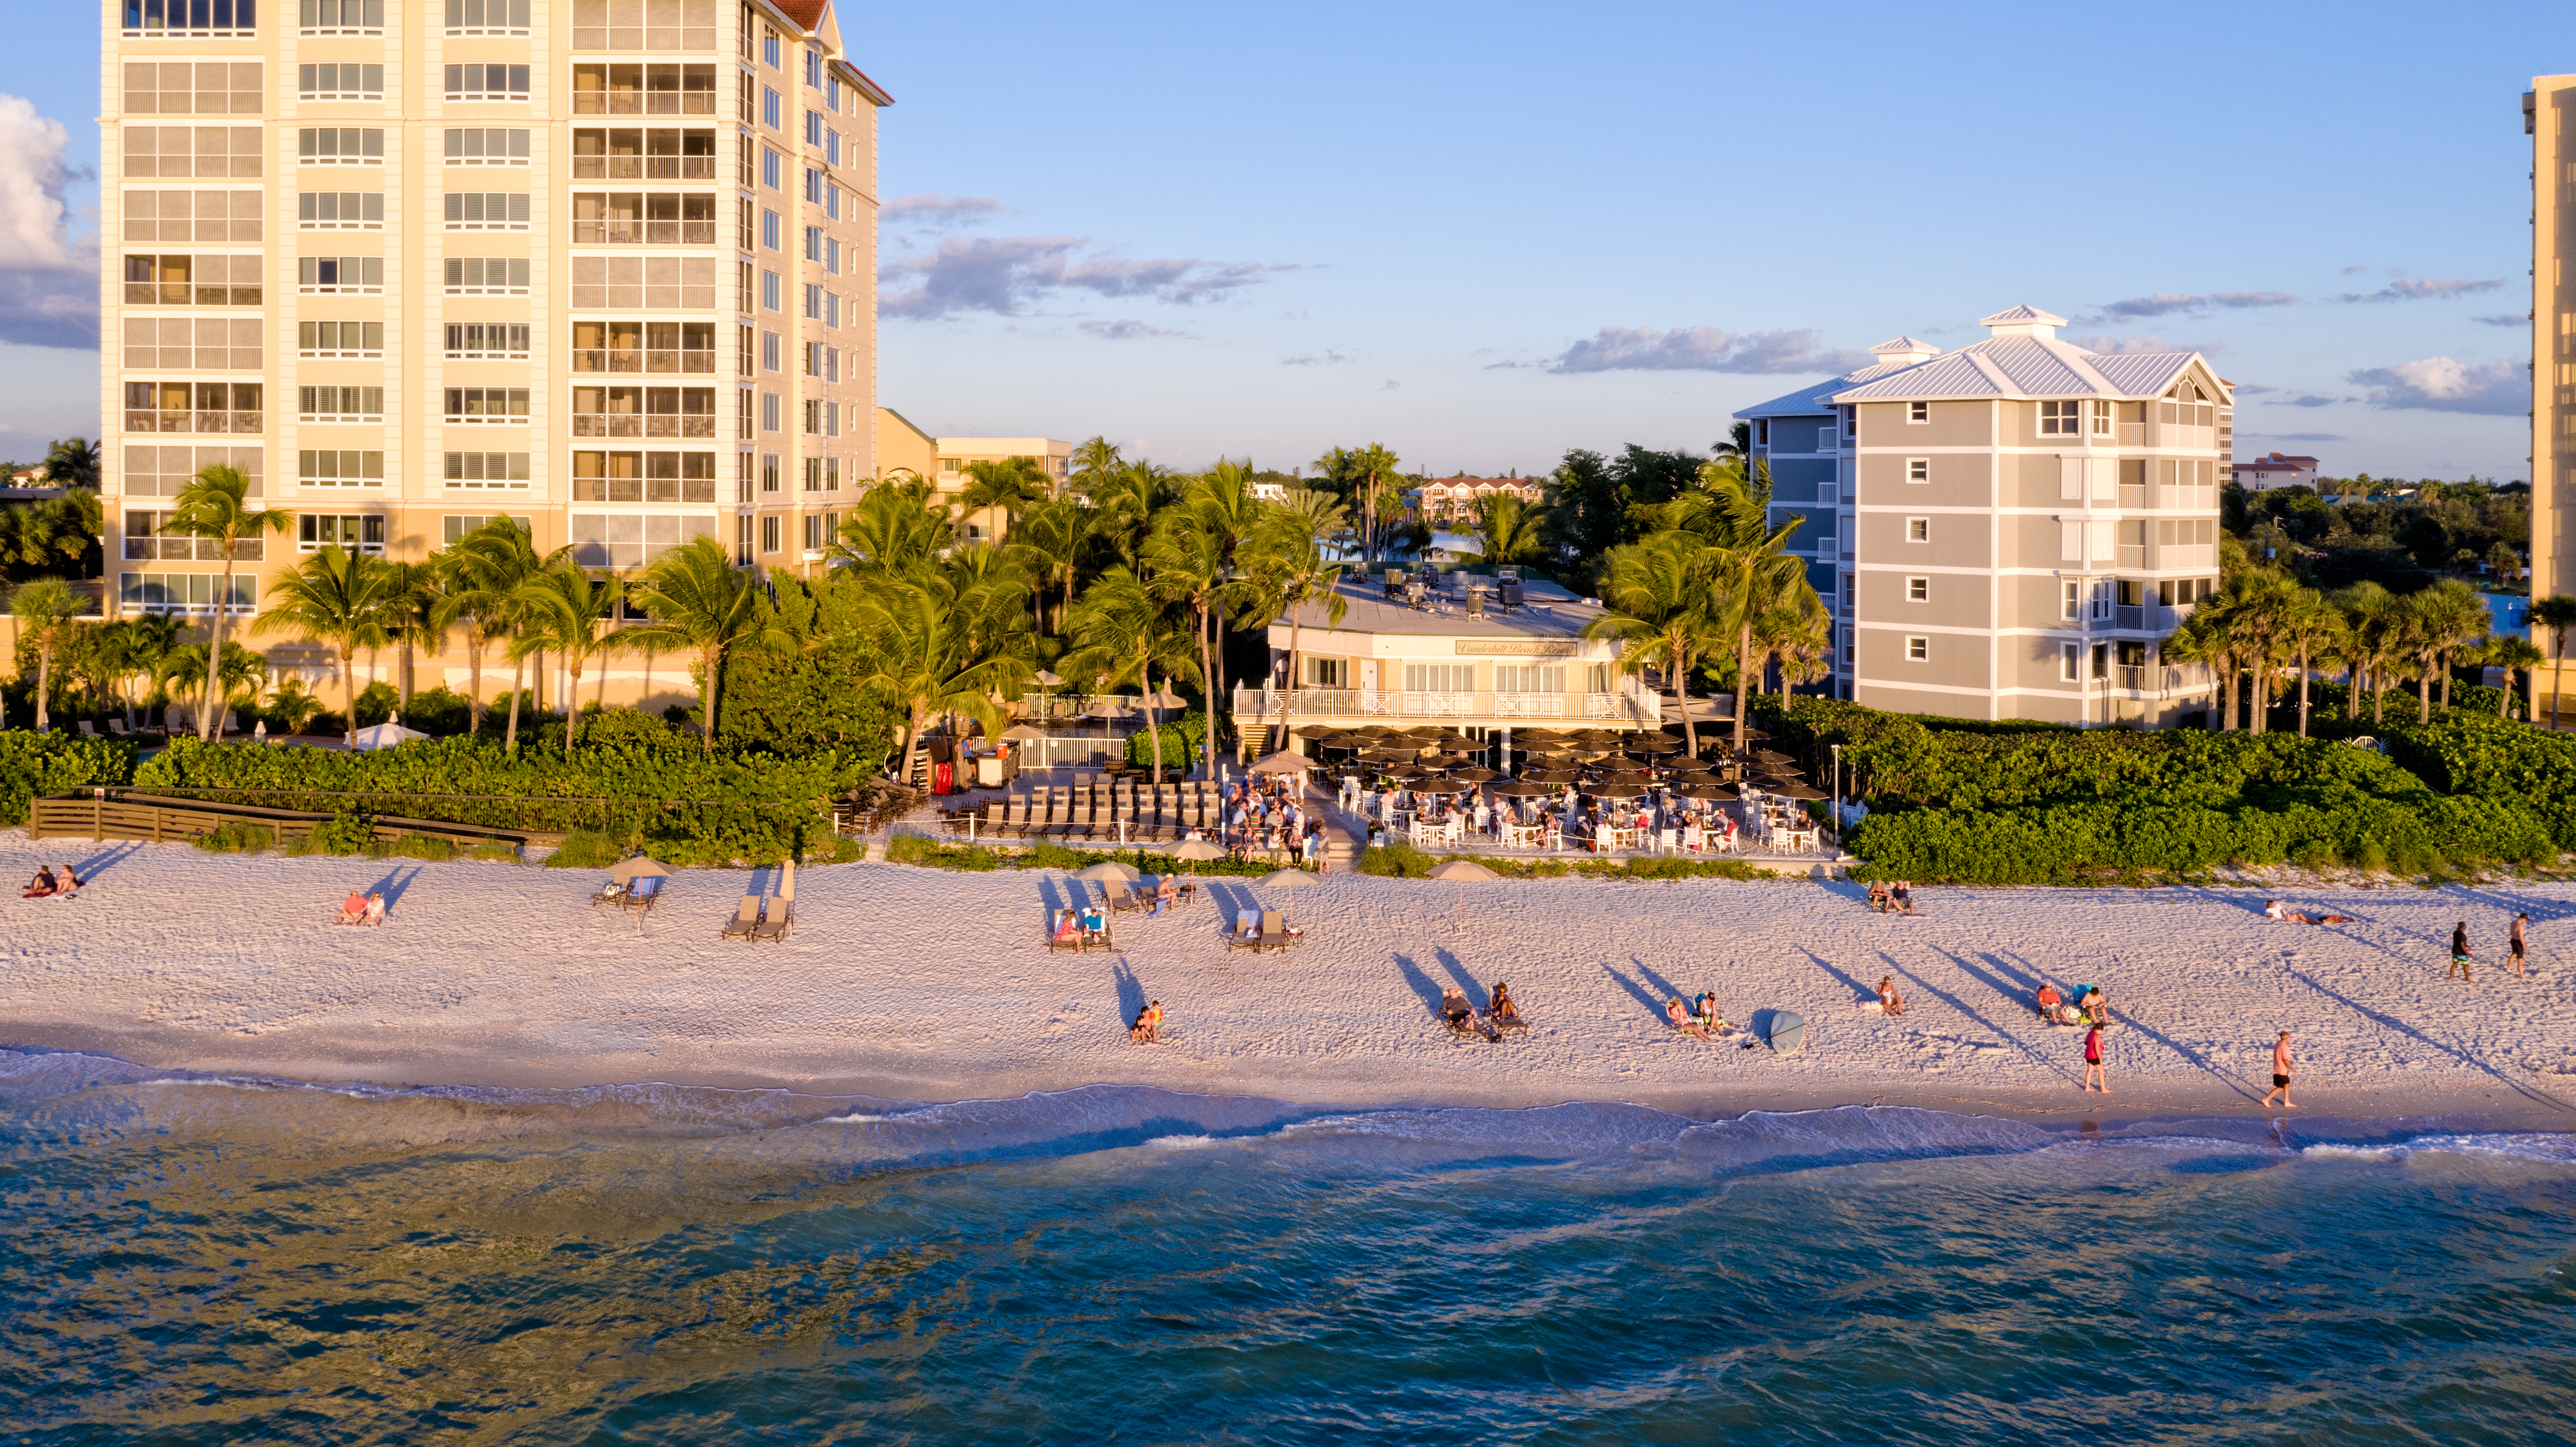 The Vanderbilt Beach Resort  Naples Marco Island